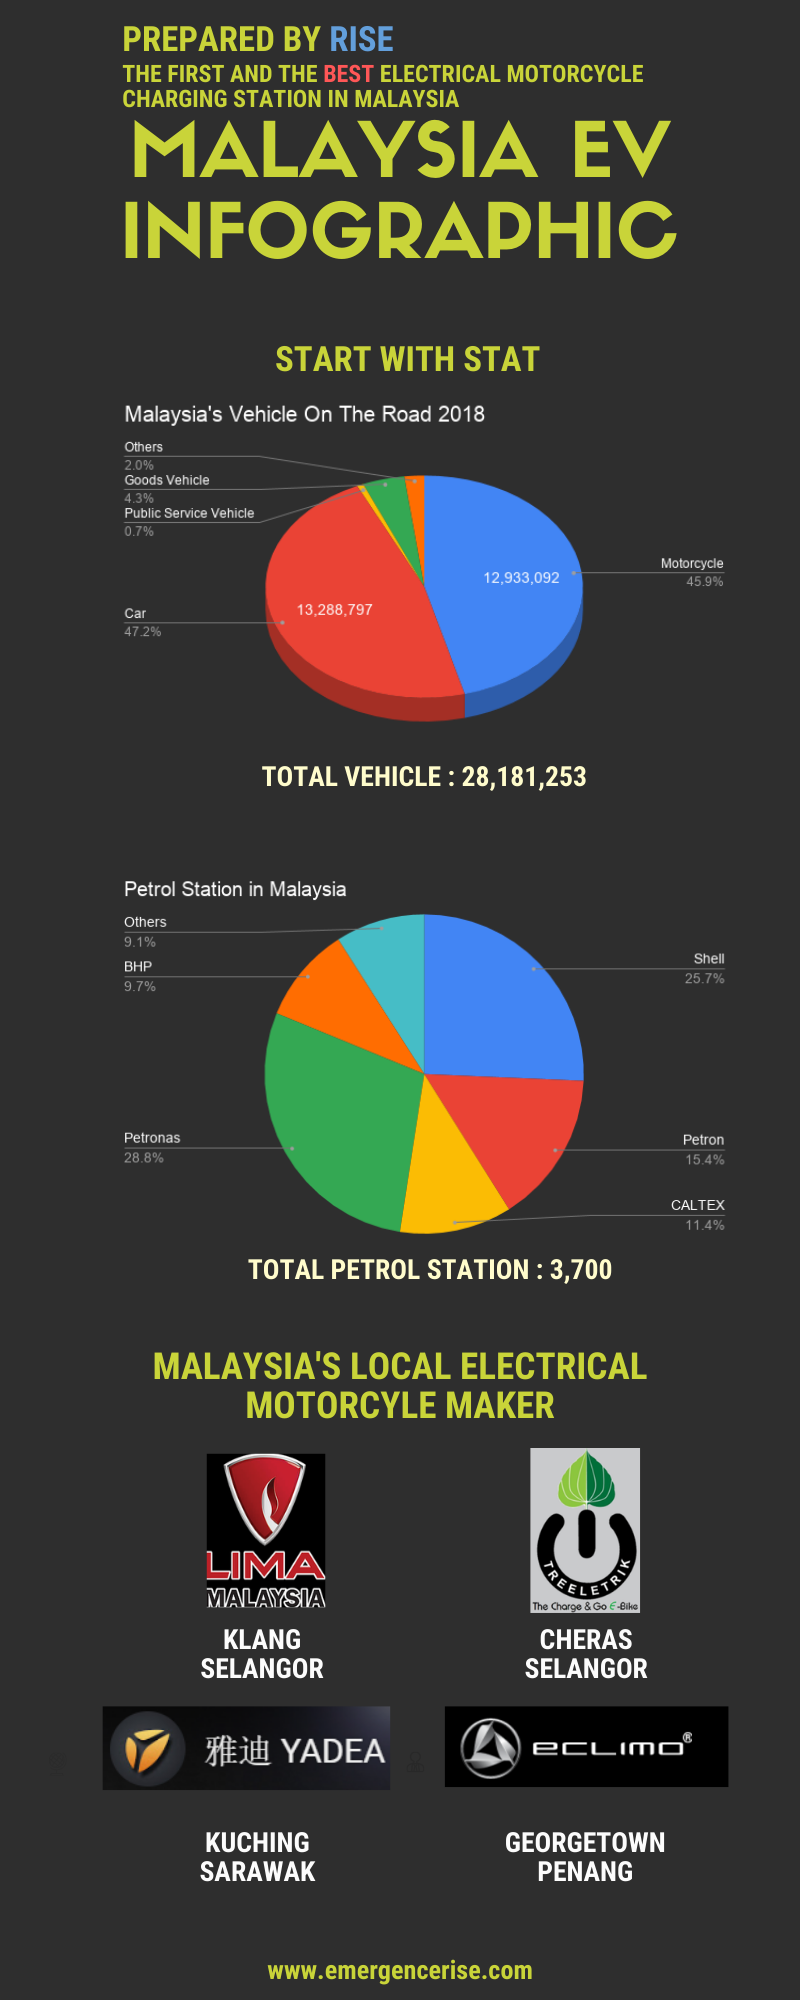 RISE Malaysia EV Infographic.png